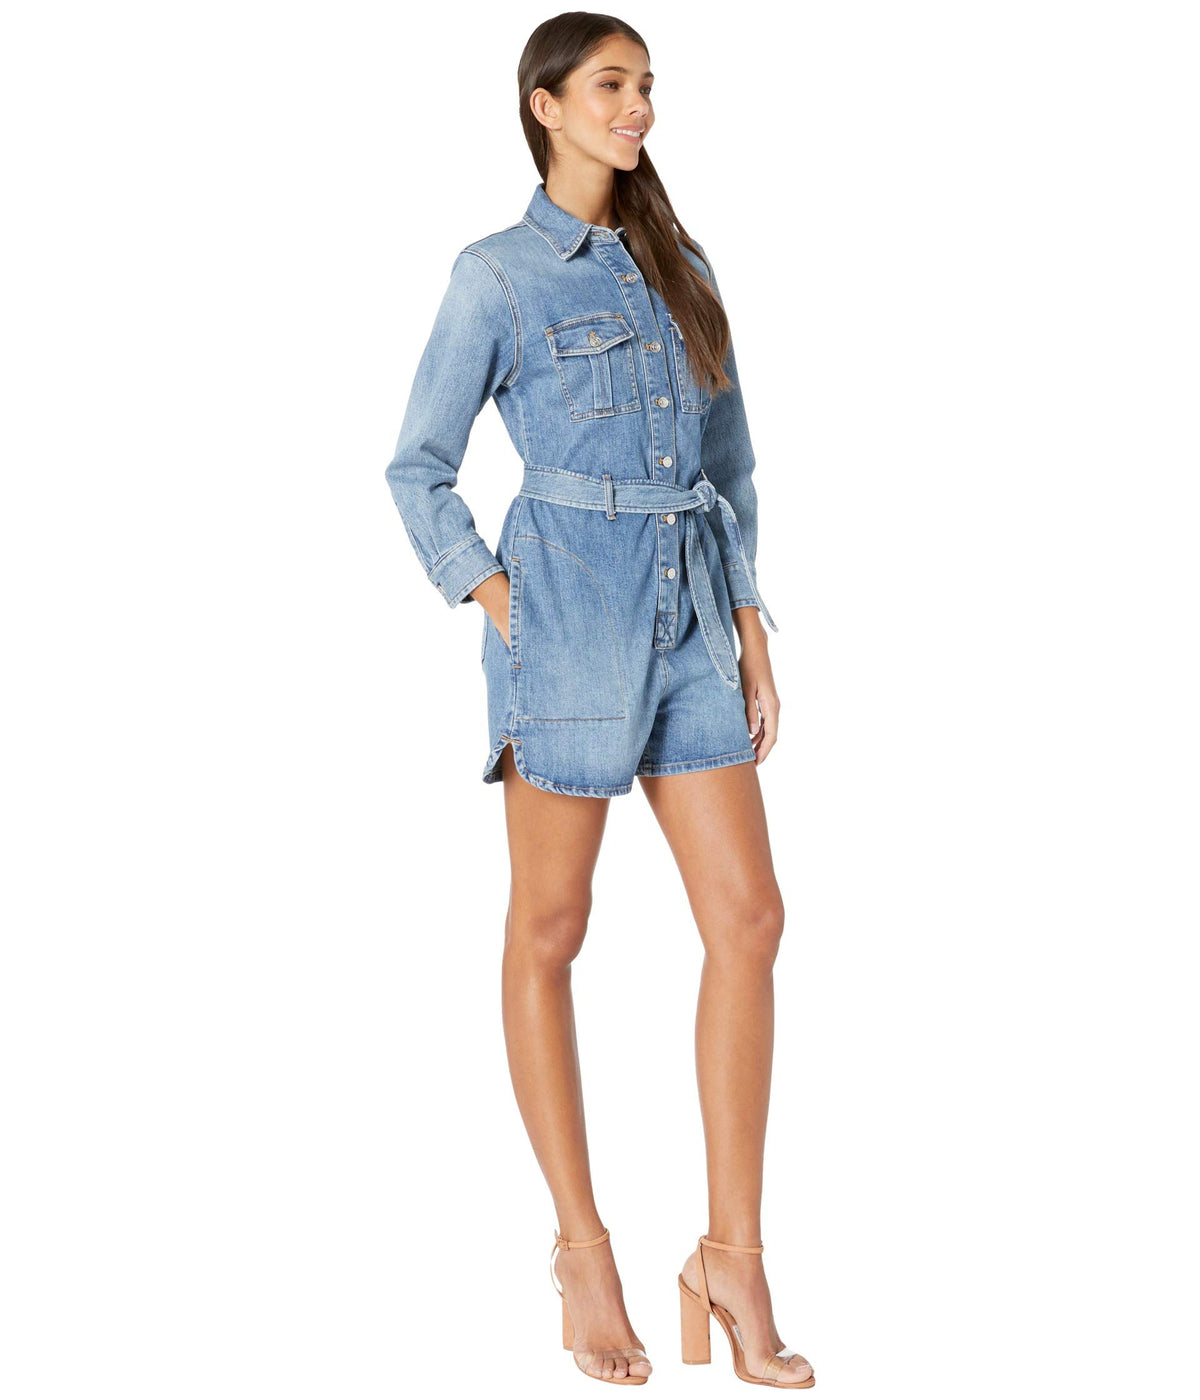 The Ater Romper